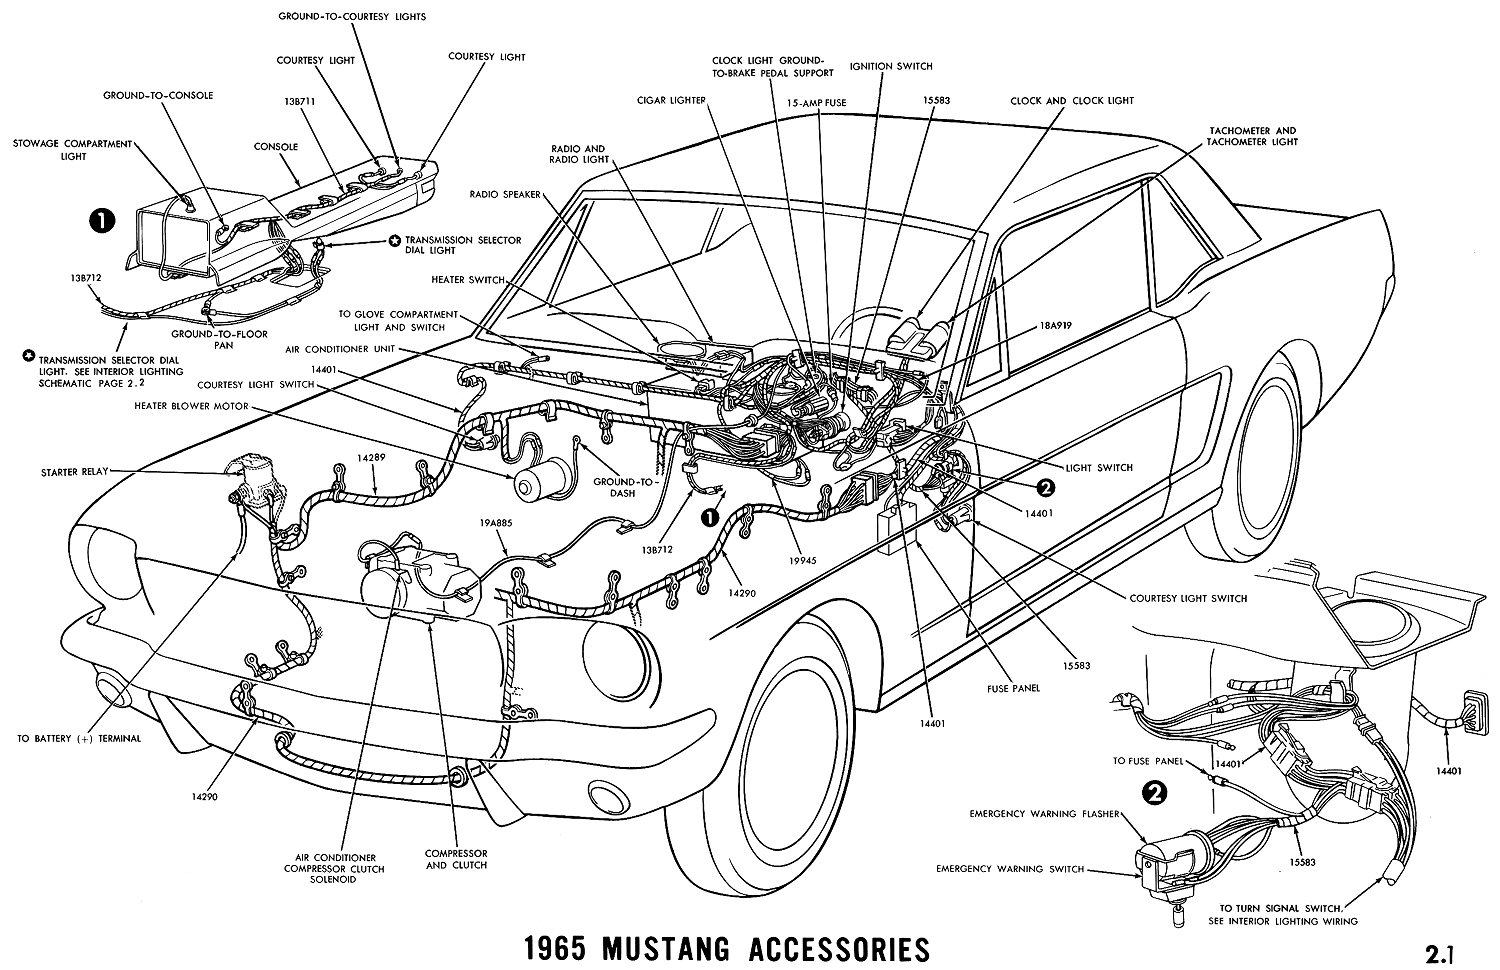 1965 Mustang Wiring Diagrams Average Joe Restoration 66 Mustang Horn Wiring  65 Mustang Fuse Box Diagram